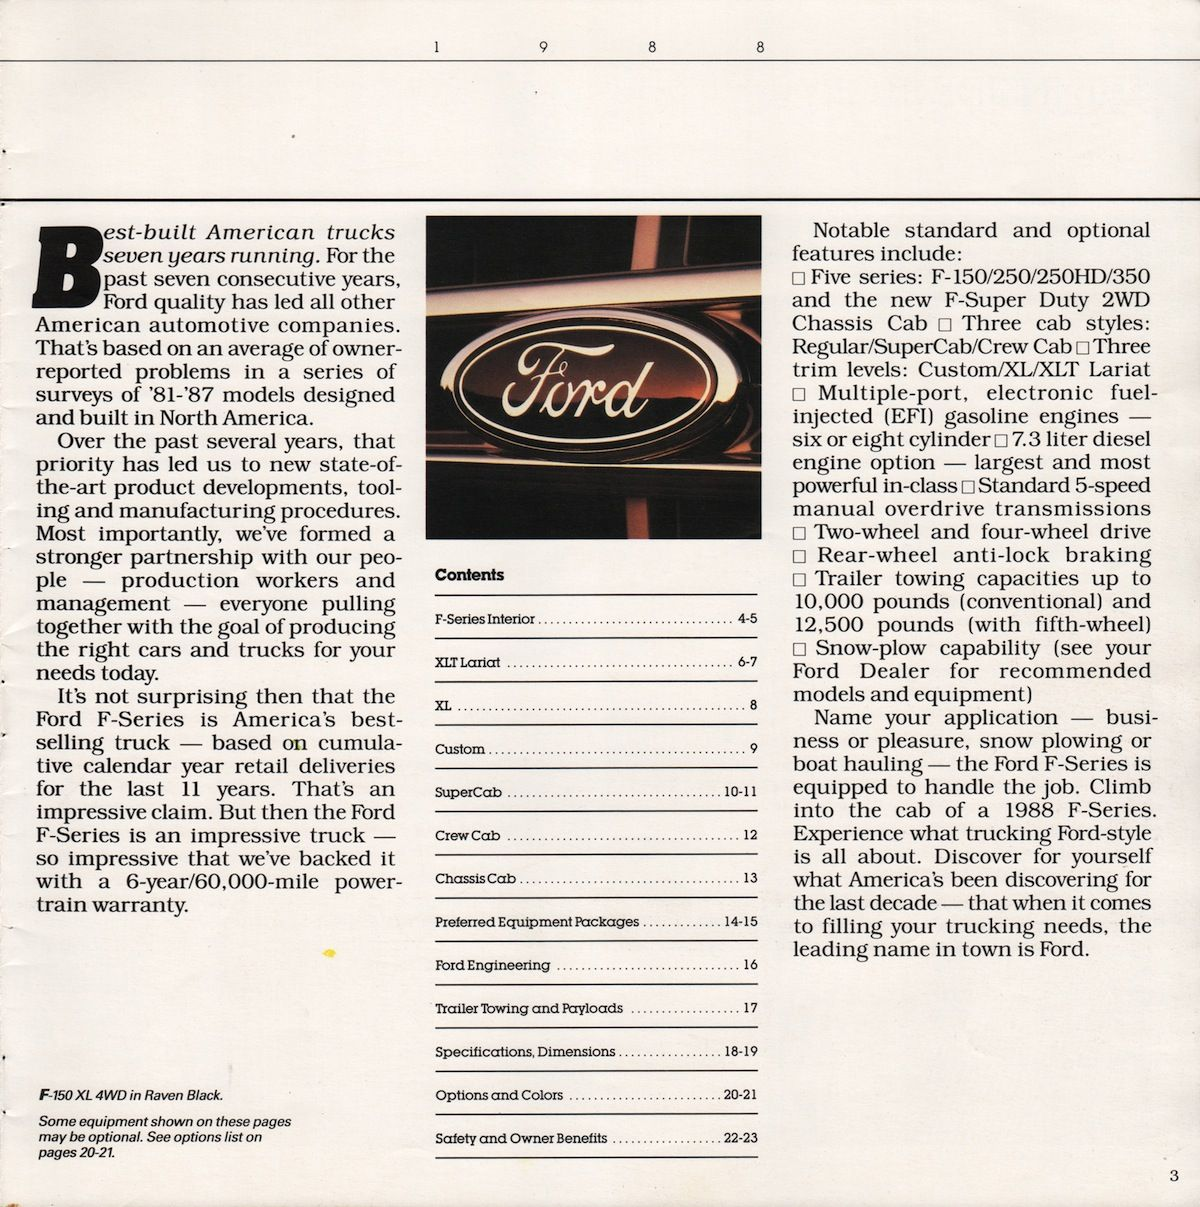 Recreation Vehicles Ford Truck Sales Brochure  Ford F